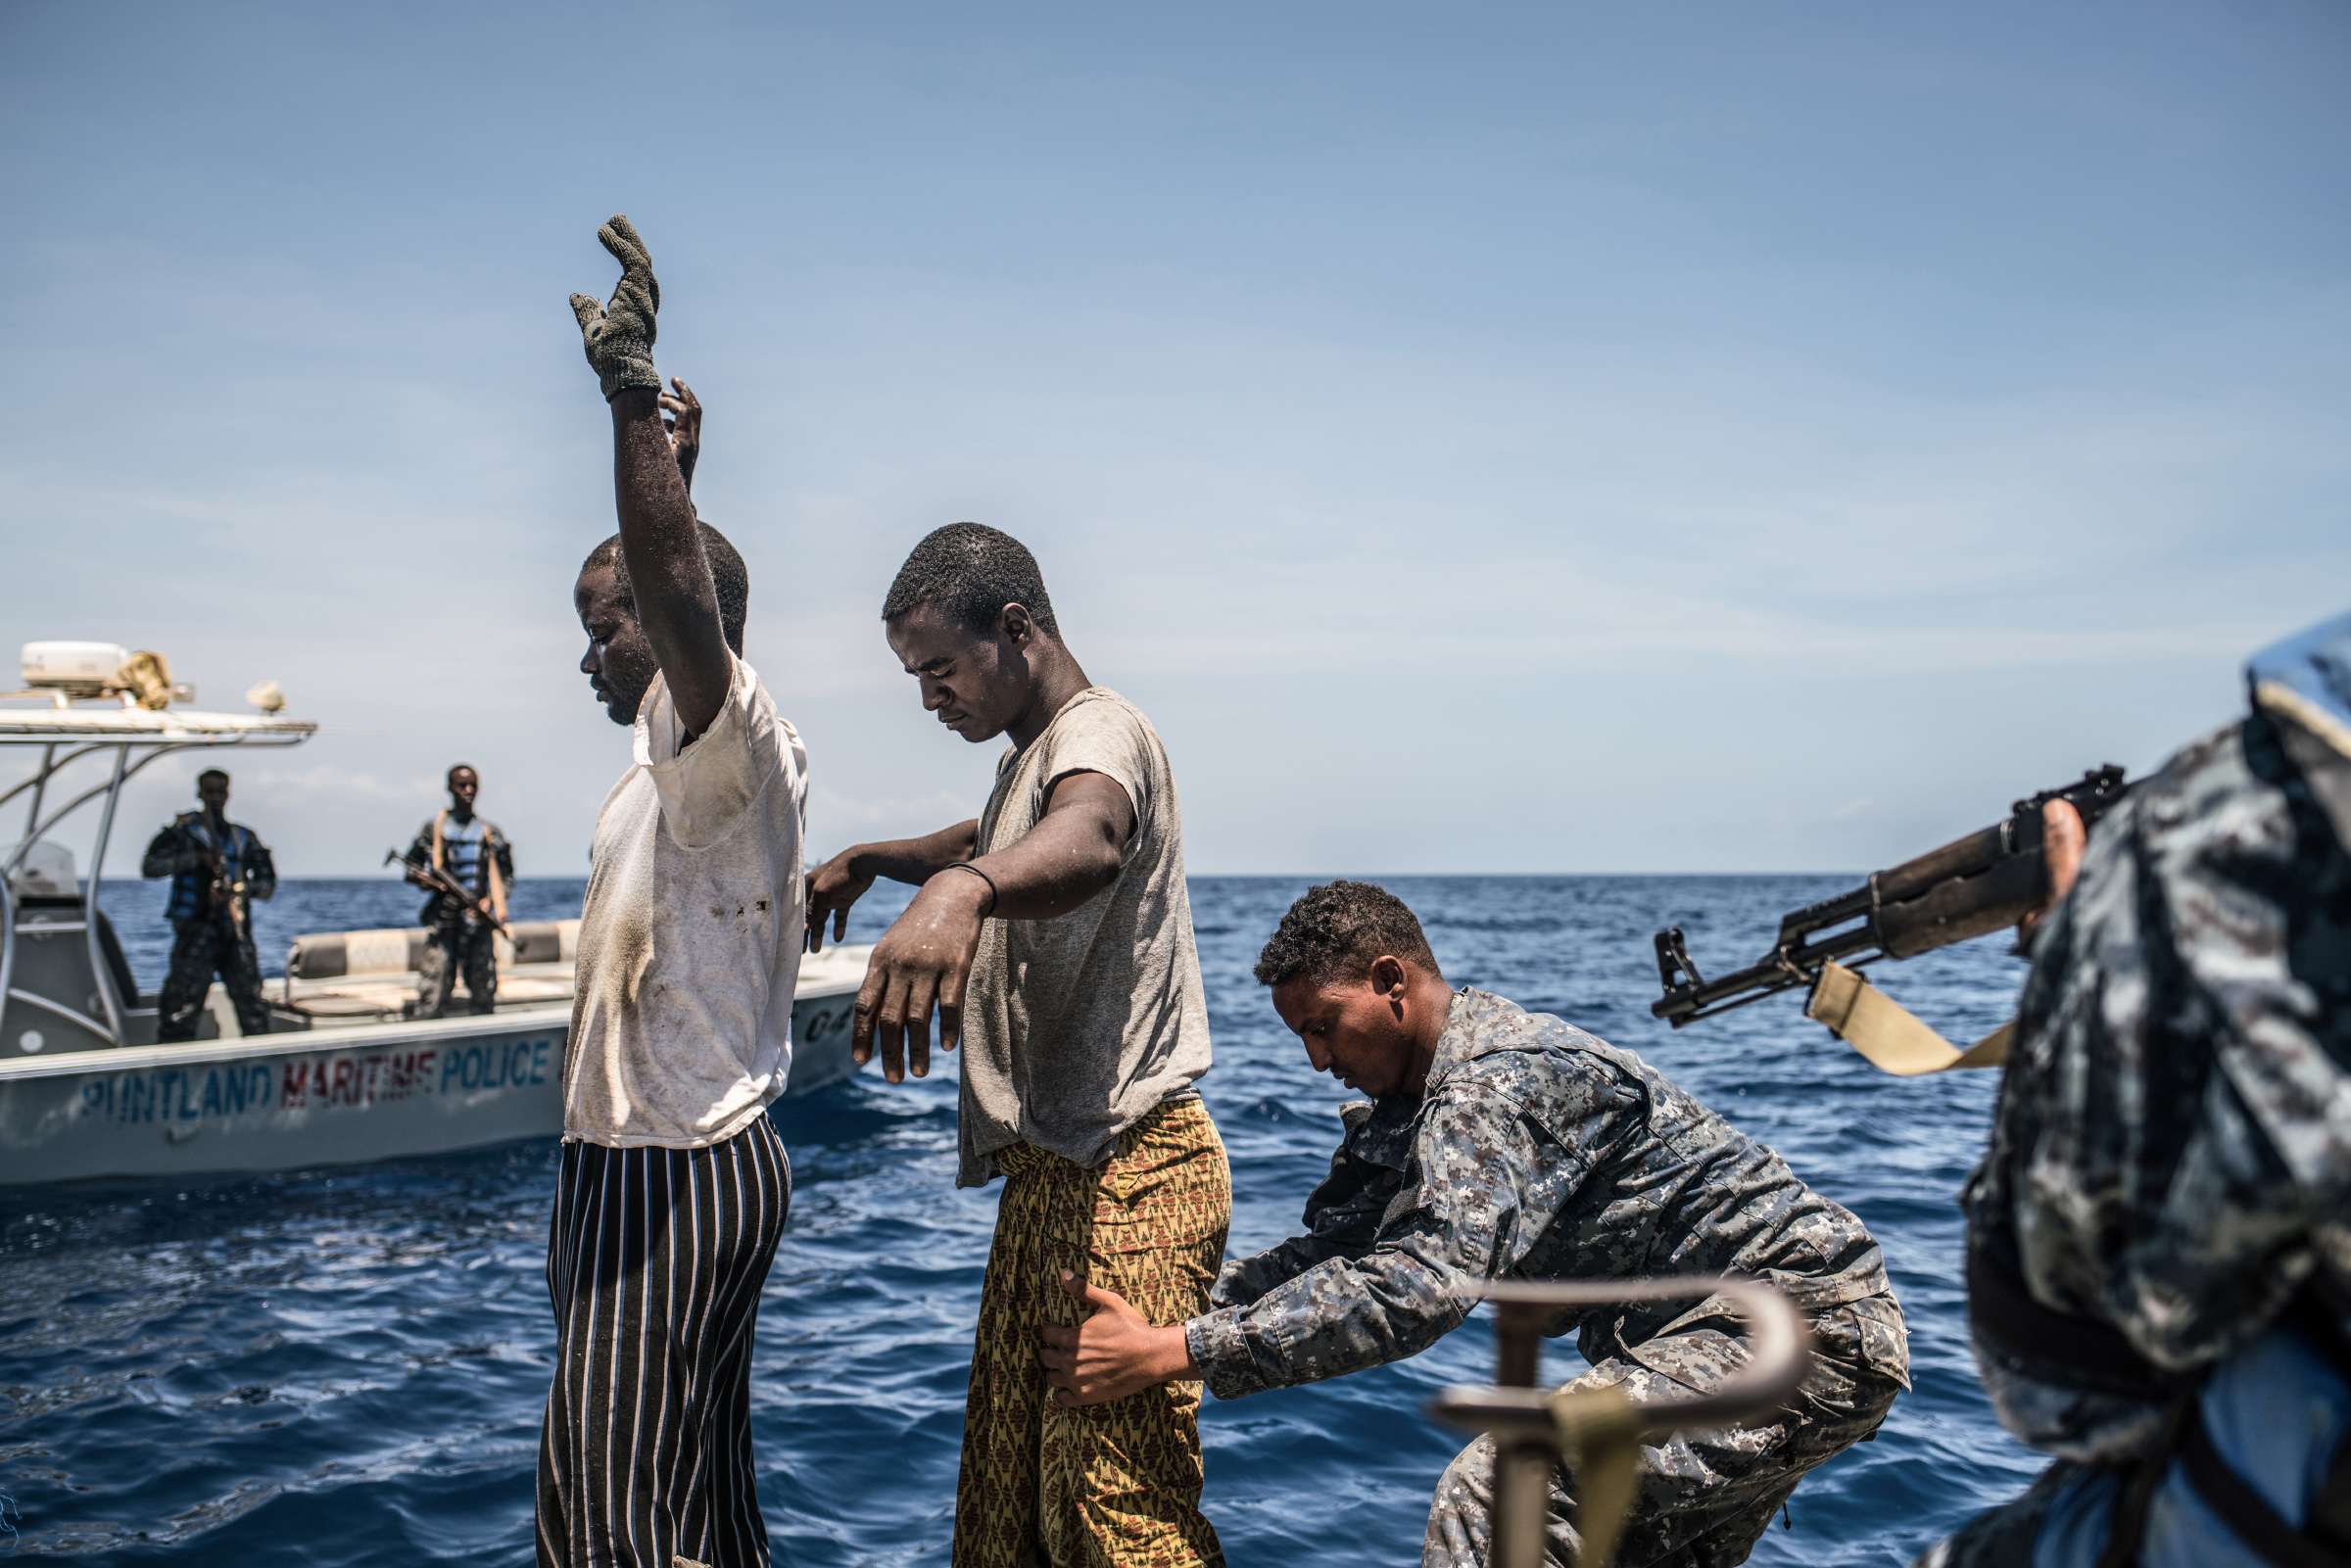 The Puntland Maritime Police Force searches a fishing boat for arms while on patrol off the coast of Bosasso. (Photo by Nichole Sobecki/GroundTruth)